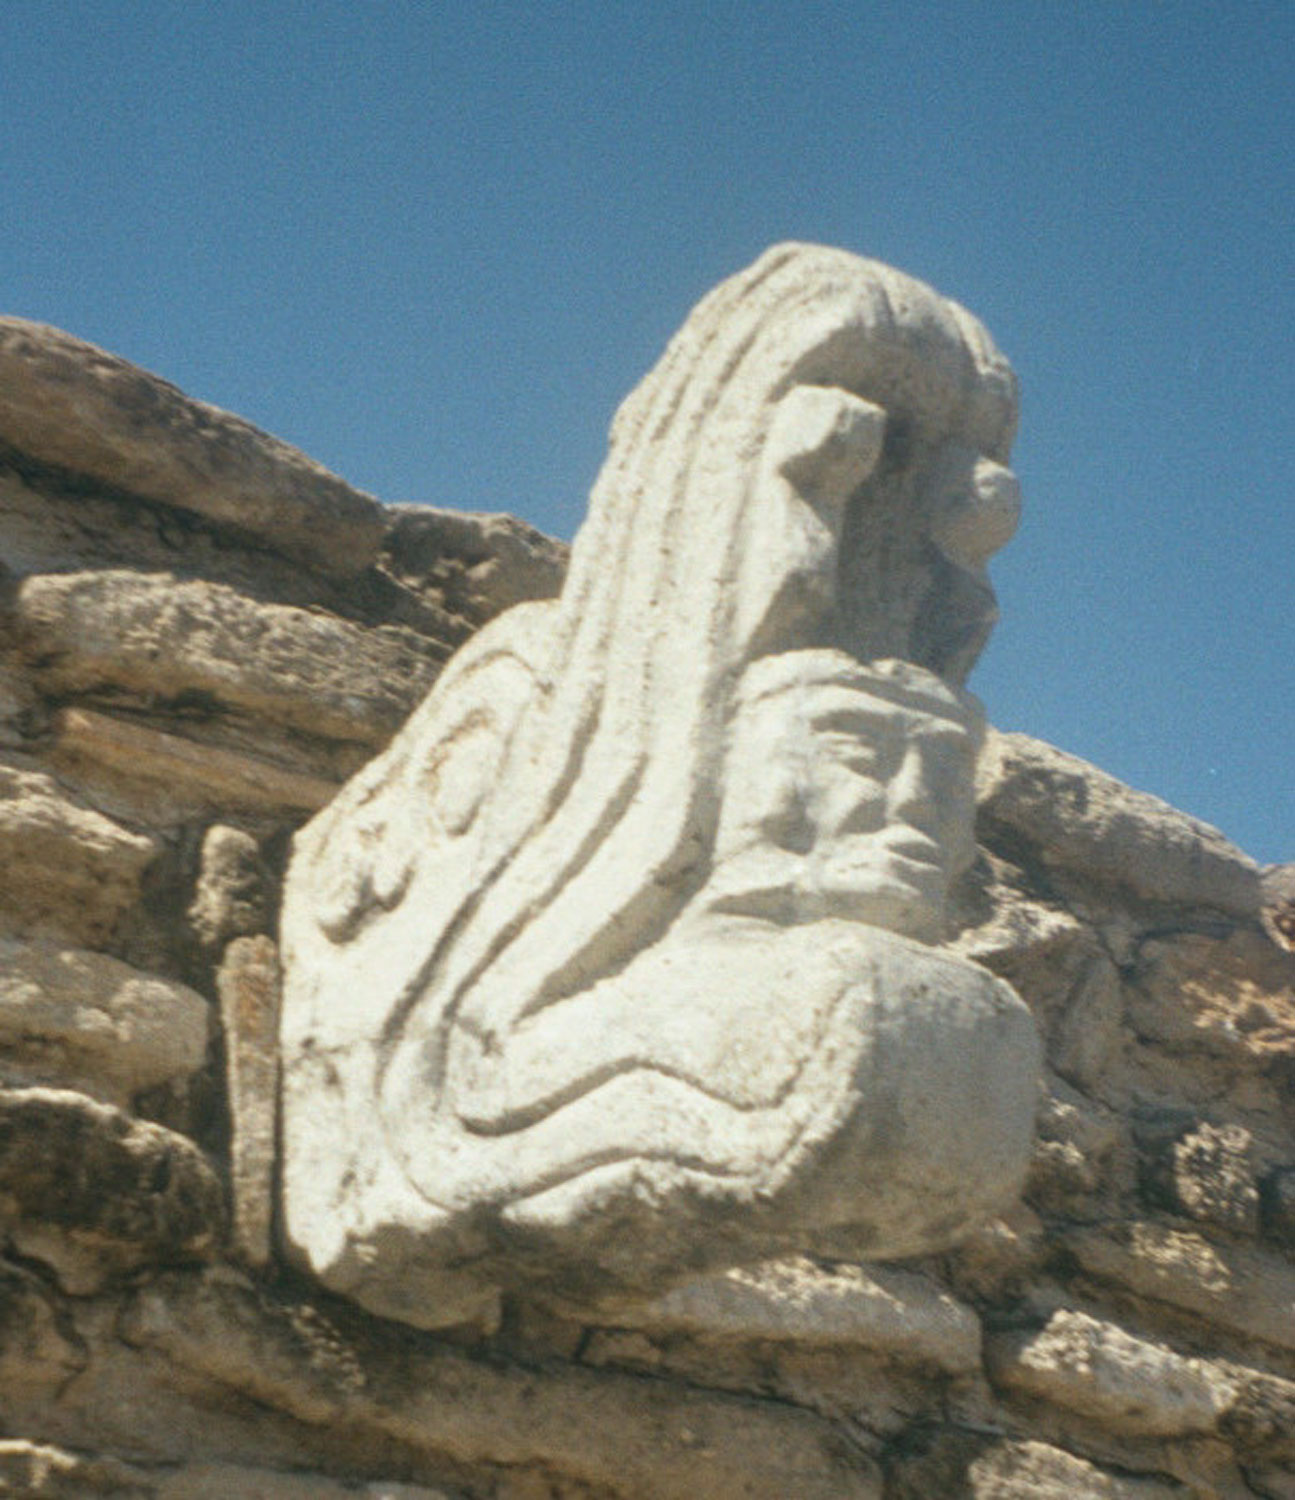 Mixco Viejo  in Guatemala: a person emerging from serpent's jaw symbolised the birth of gods and kings. Credit: Pinterest